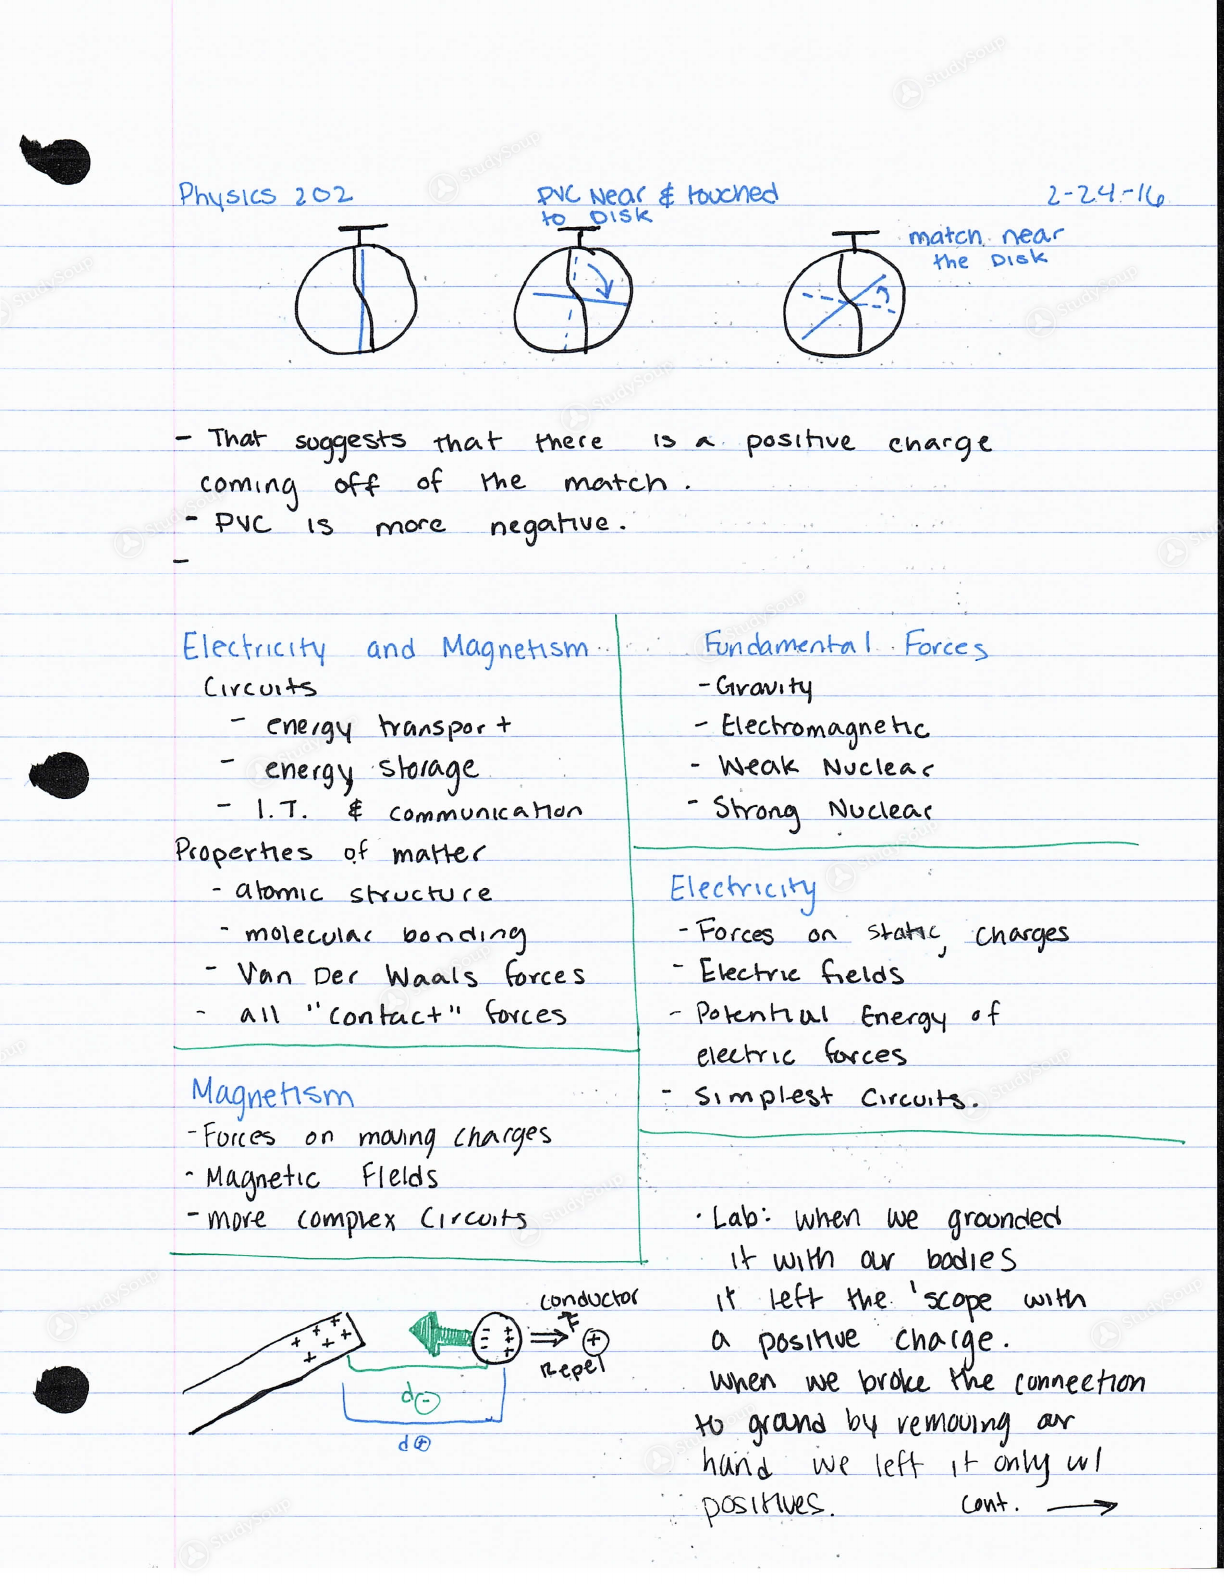 WSU Vancouver - PHYS 202 - Class Notes - Week 6 | StudySoup